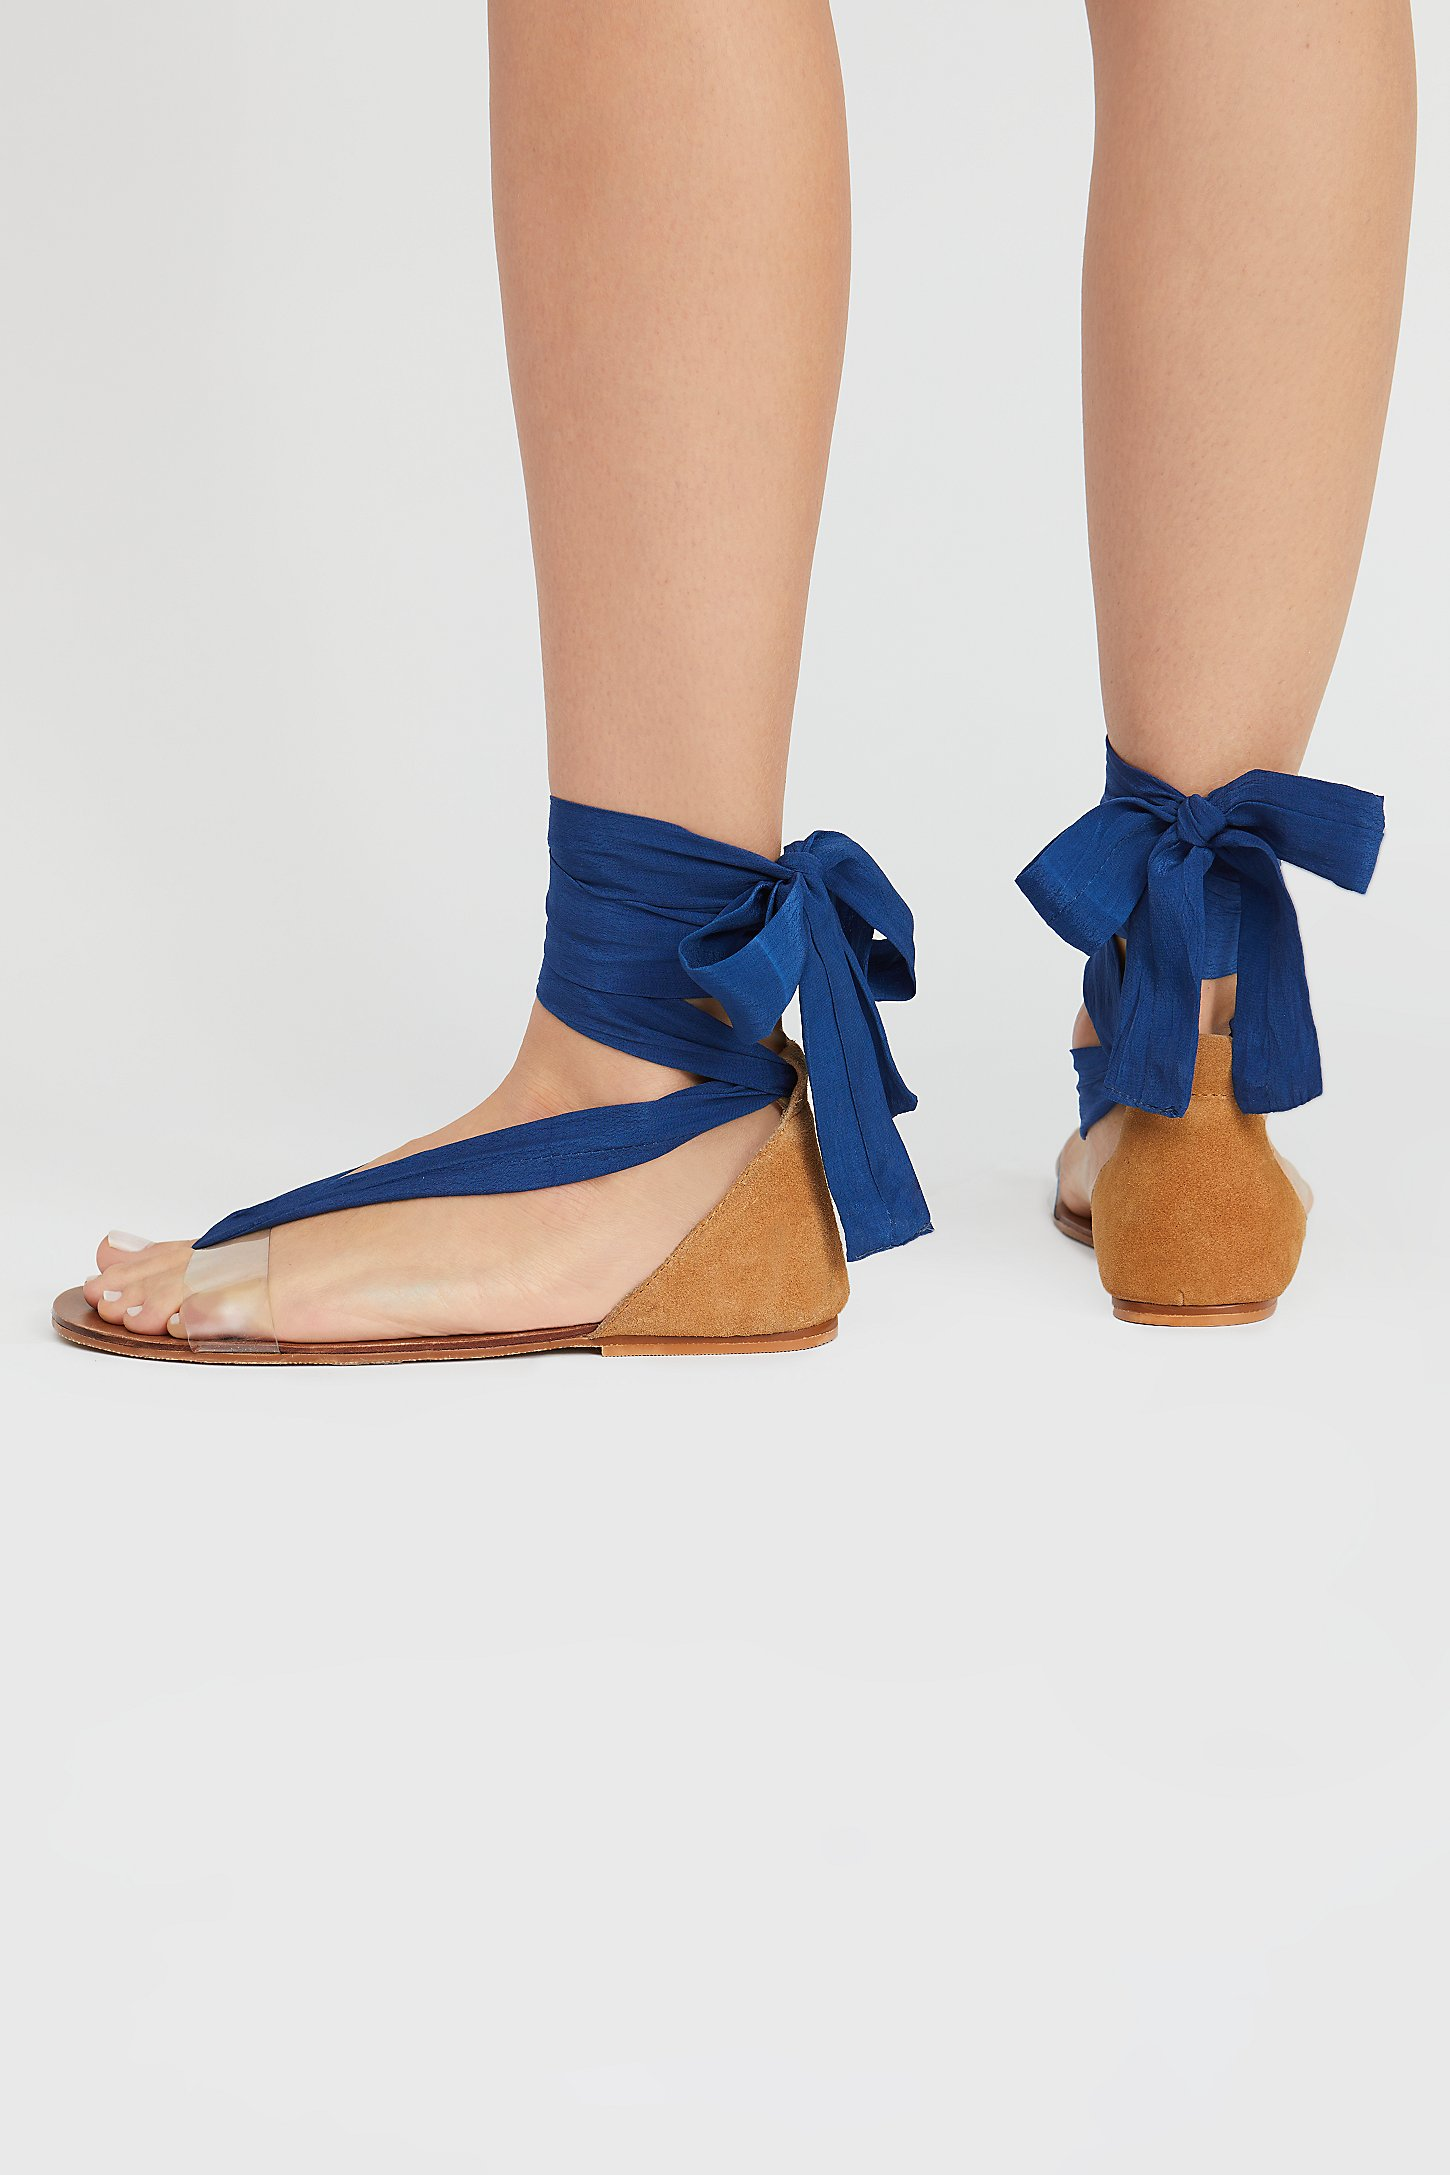 WallisSYRUP - High heeled sandals - blue